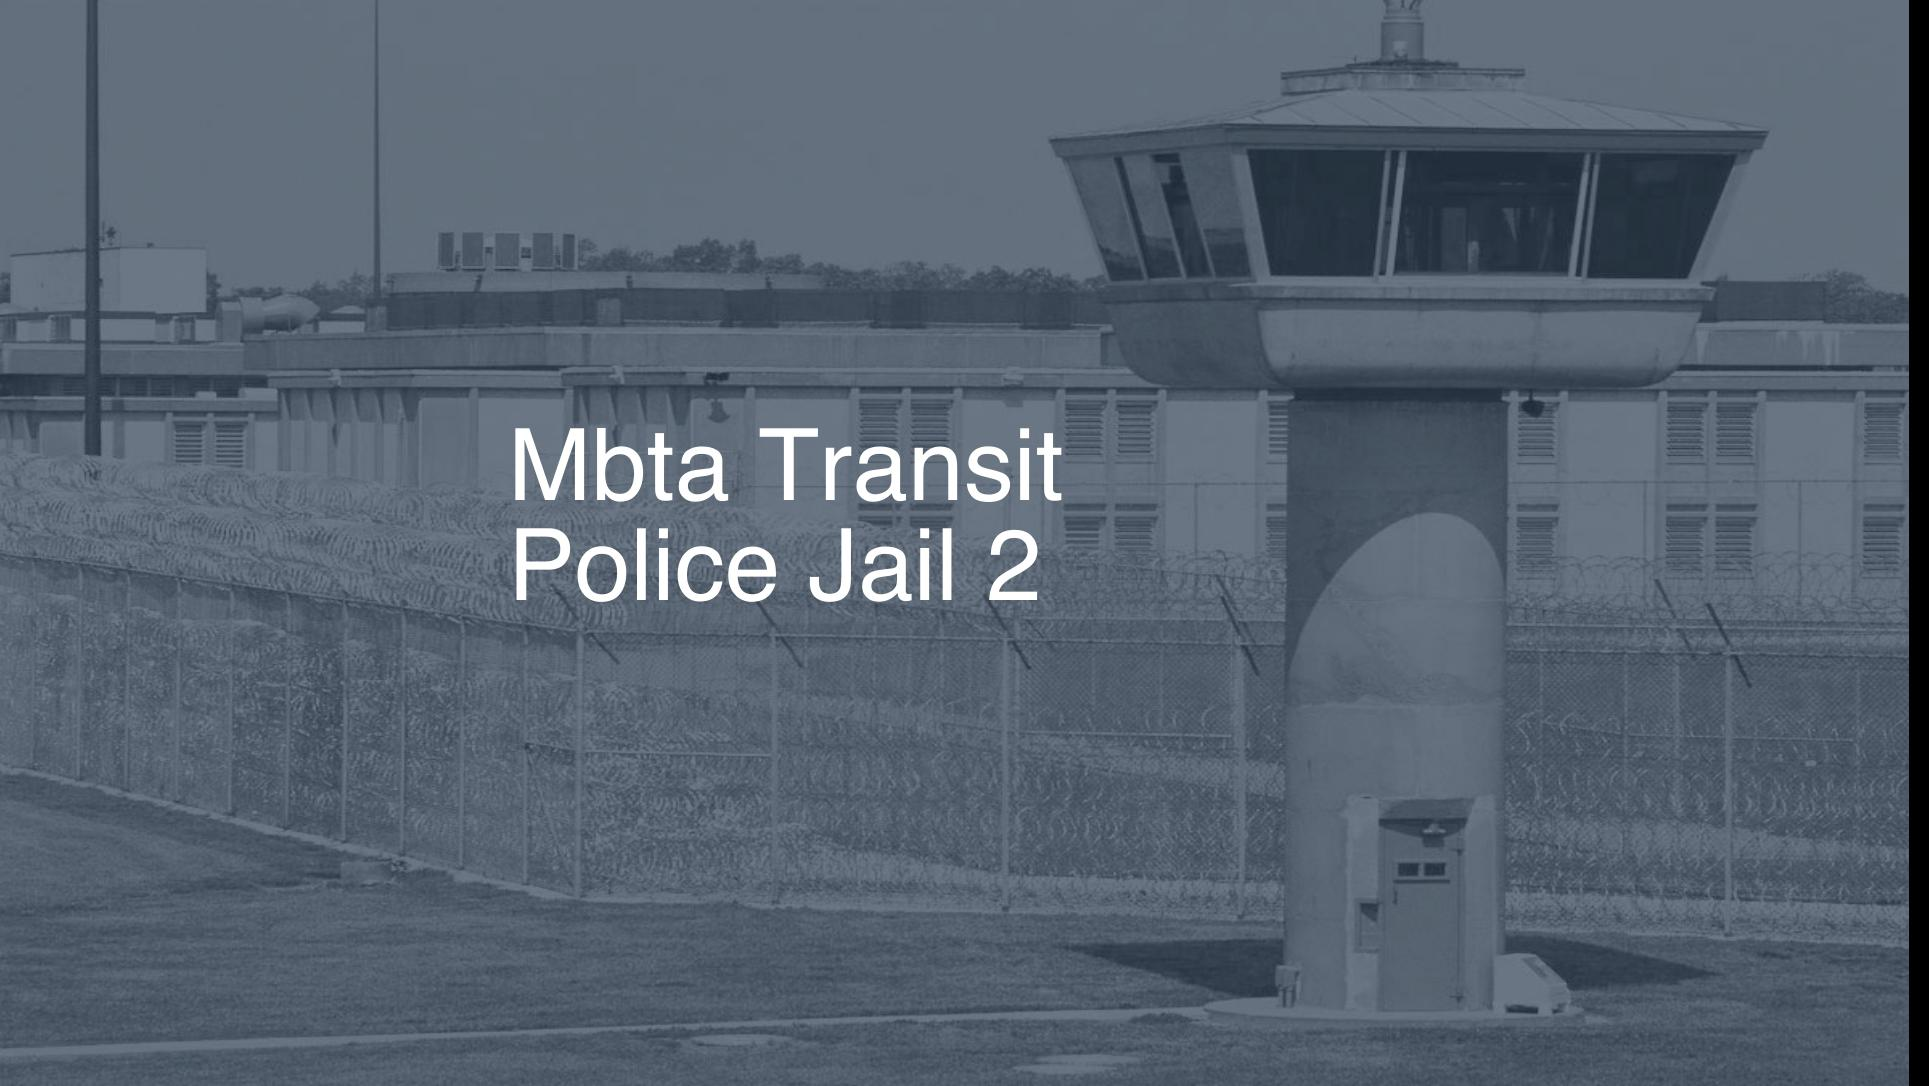 MBTA Transit Police Jail correctional facility picture